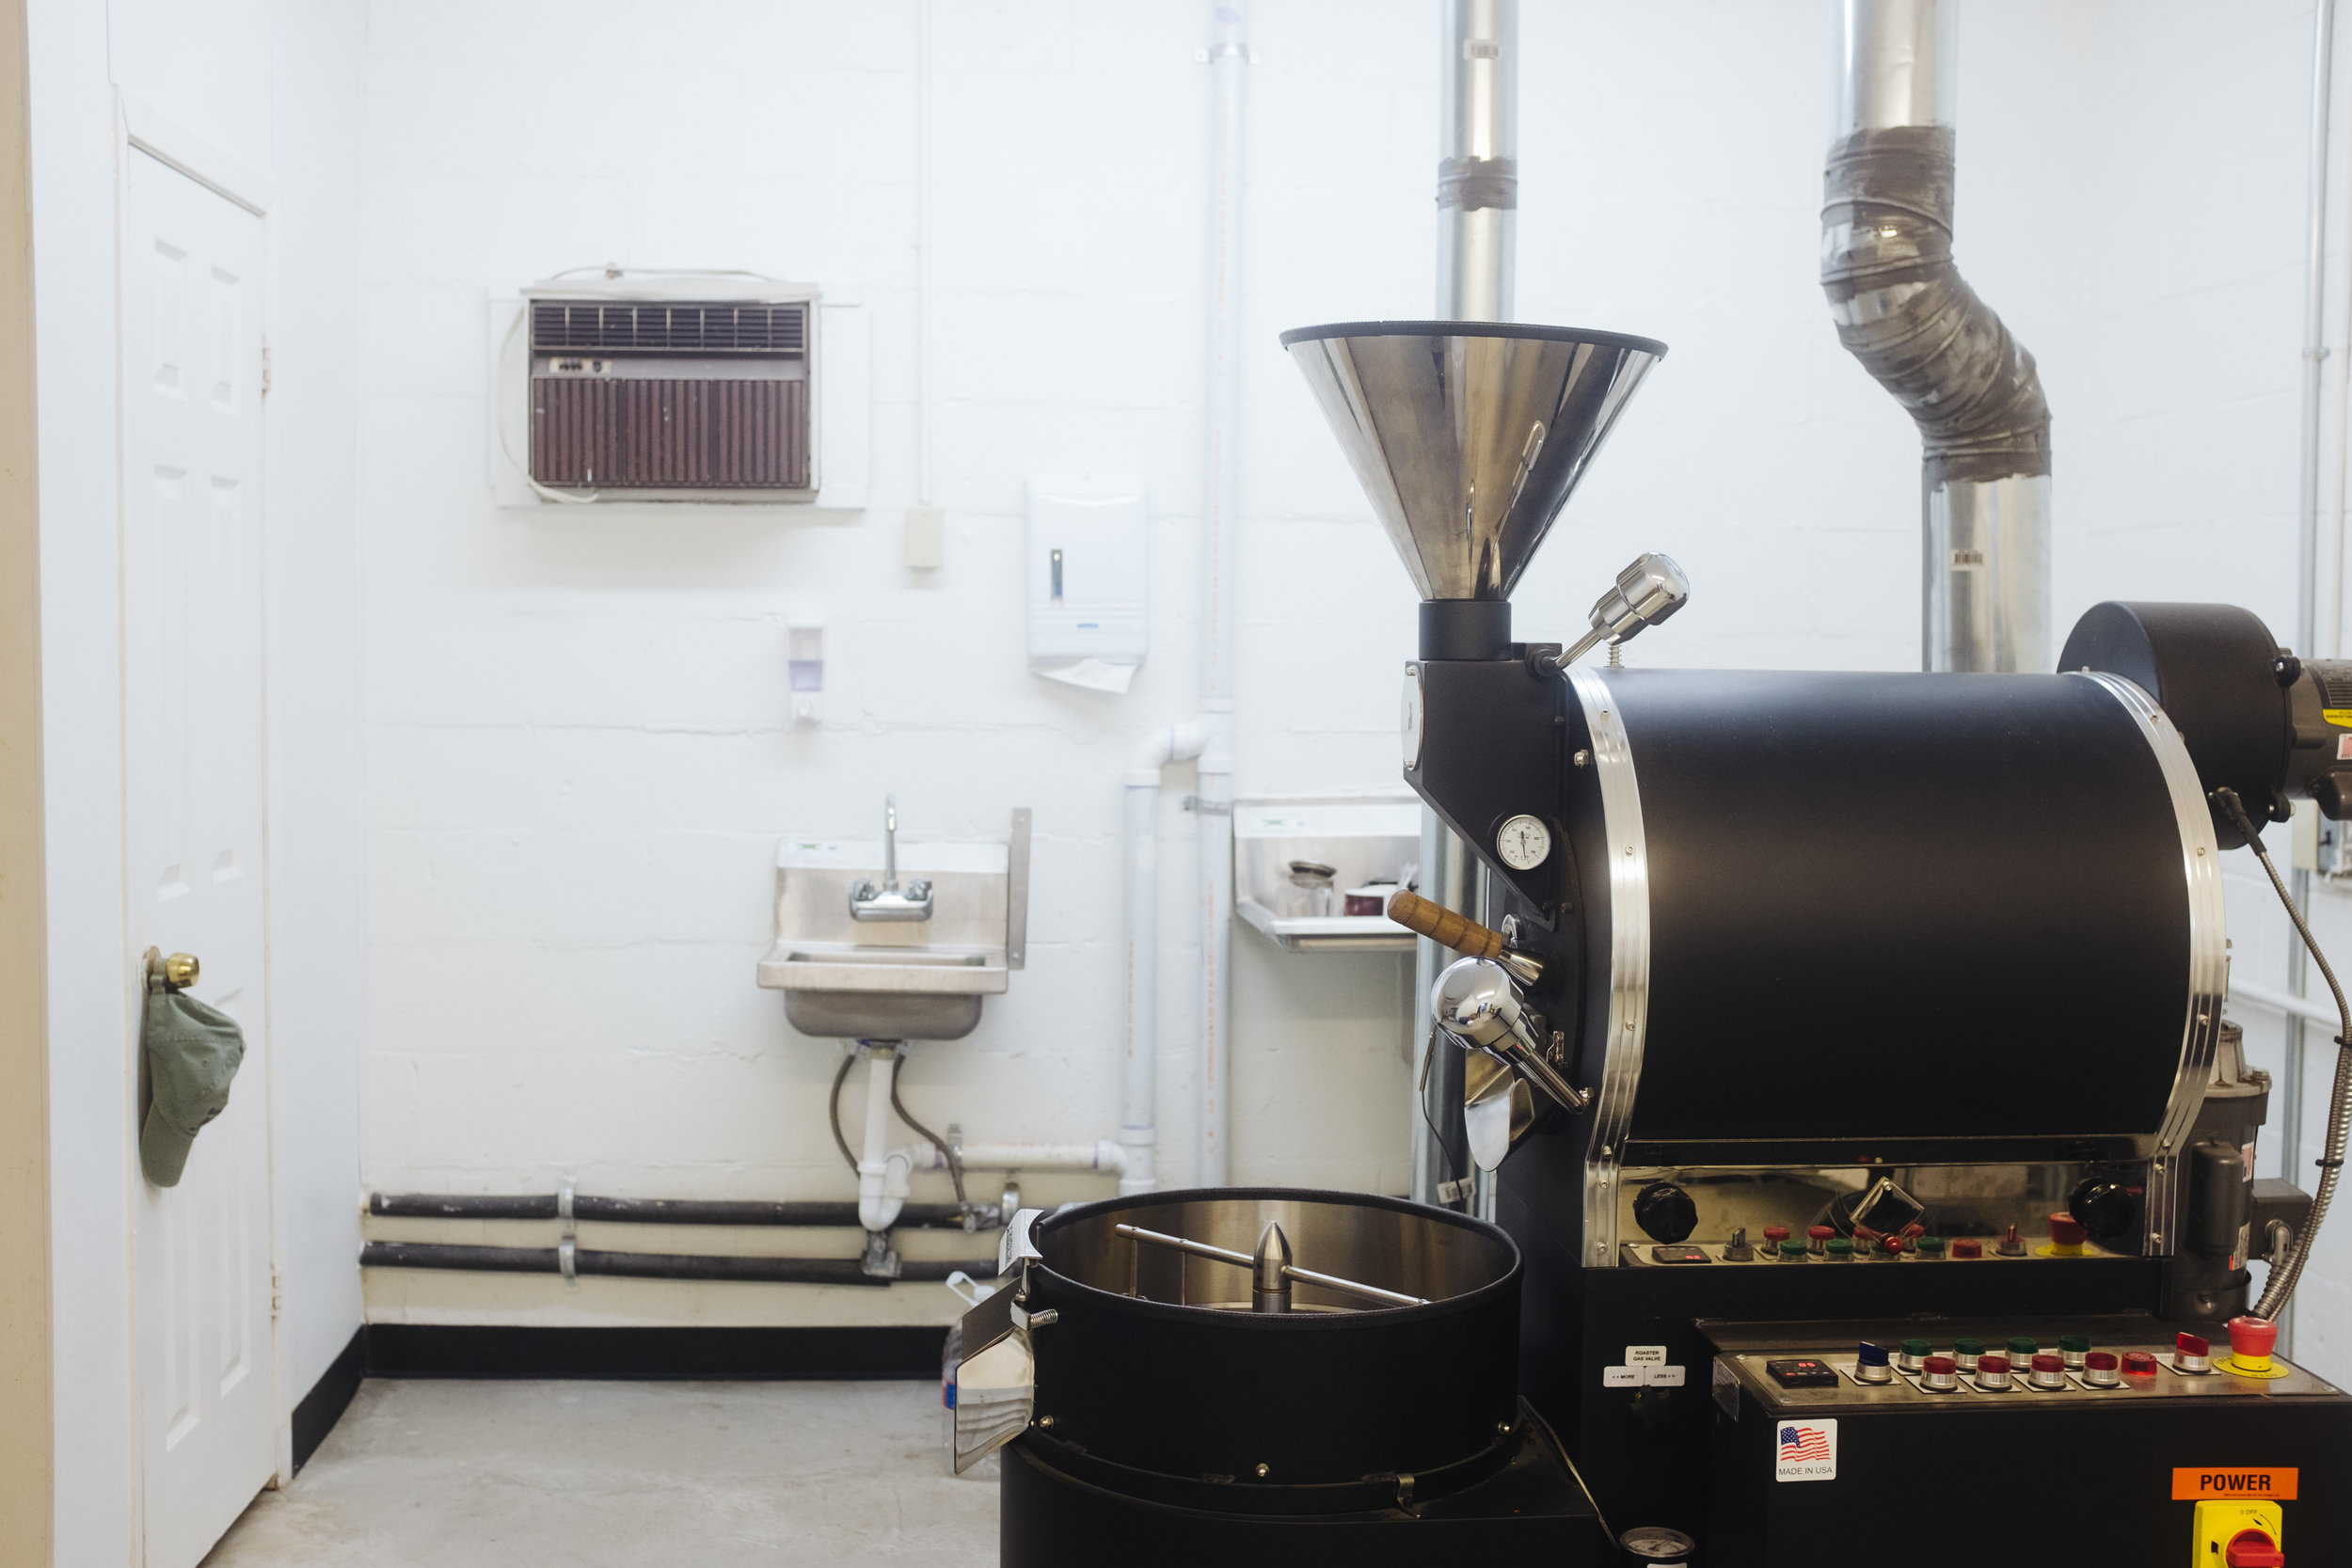 I think he needs a name for the roaster